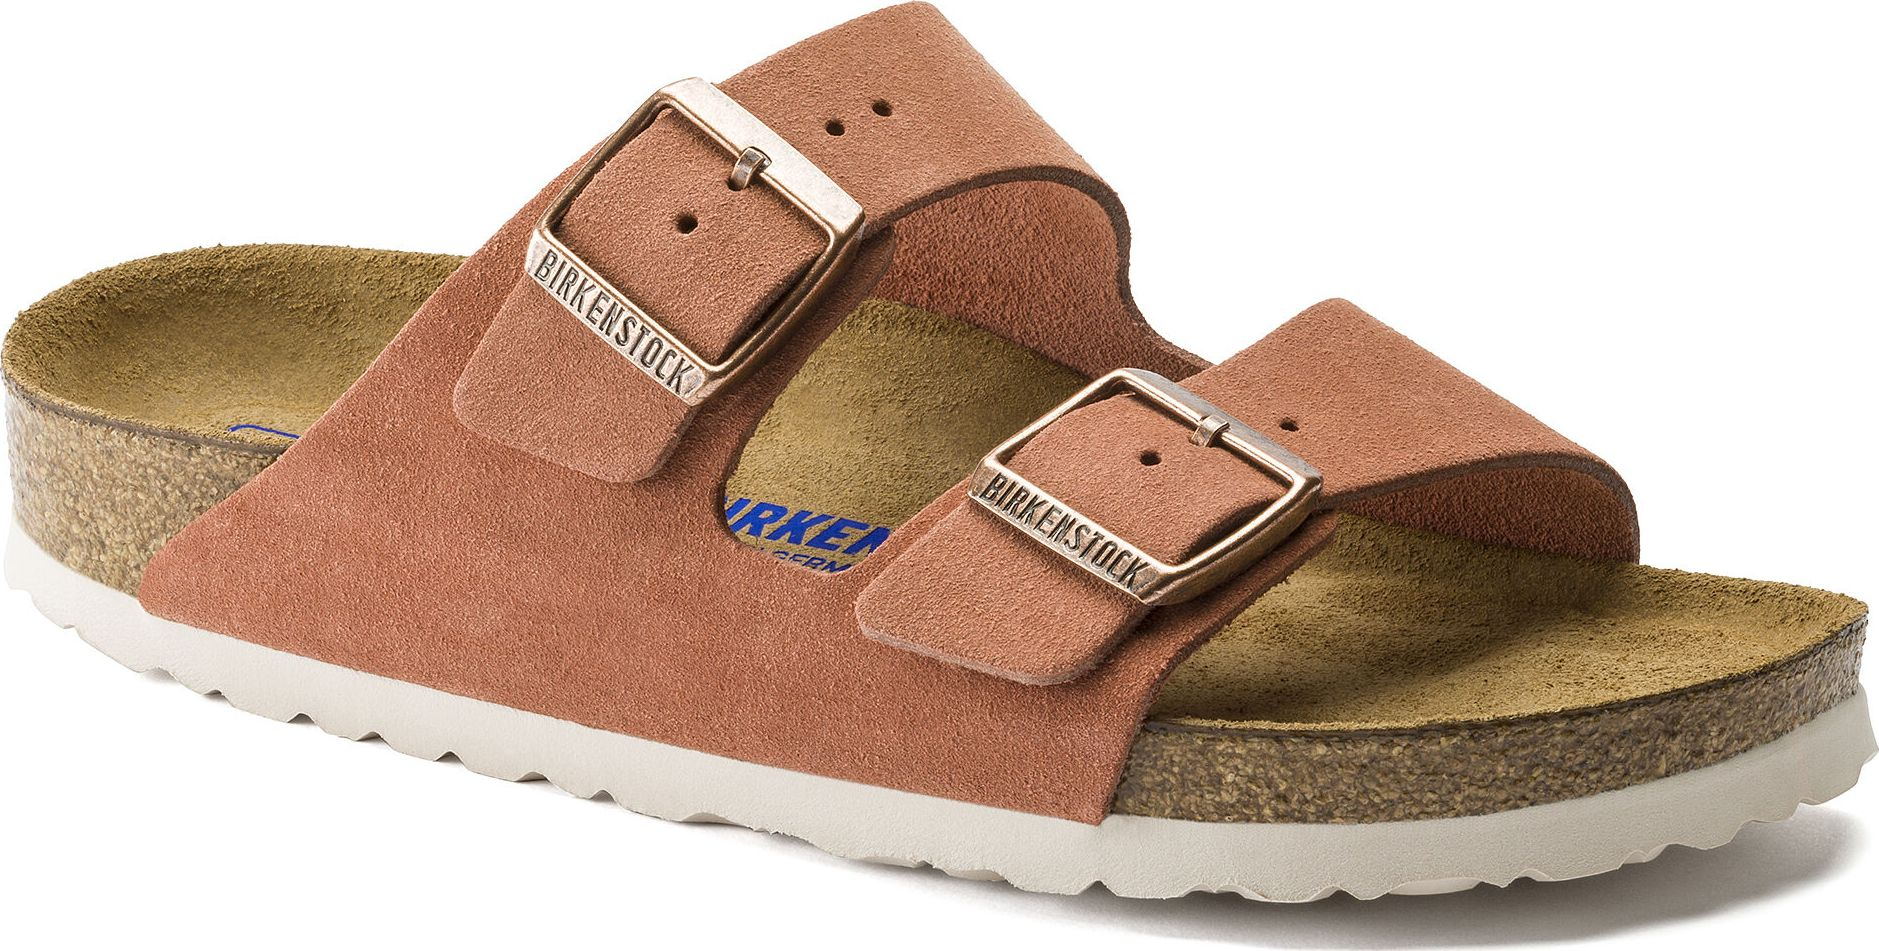 Birkenstock Arizona SFB VL Earth Red 40